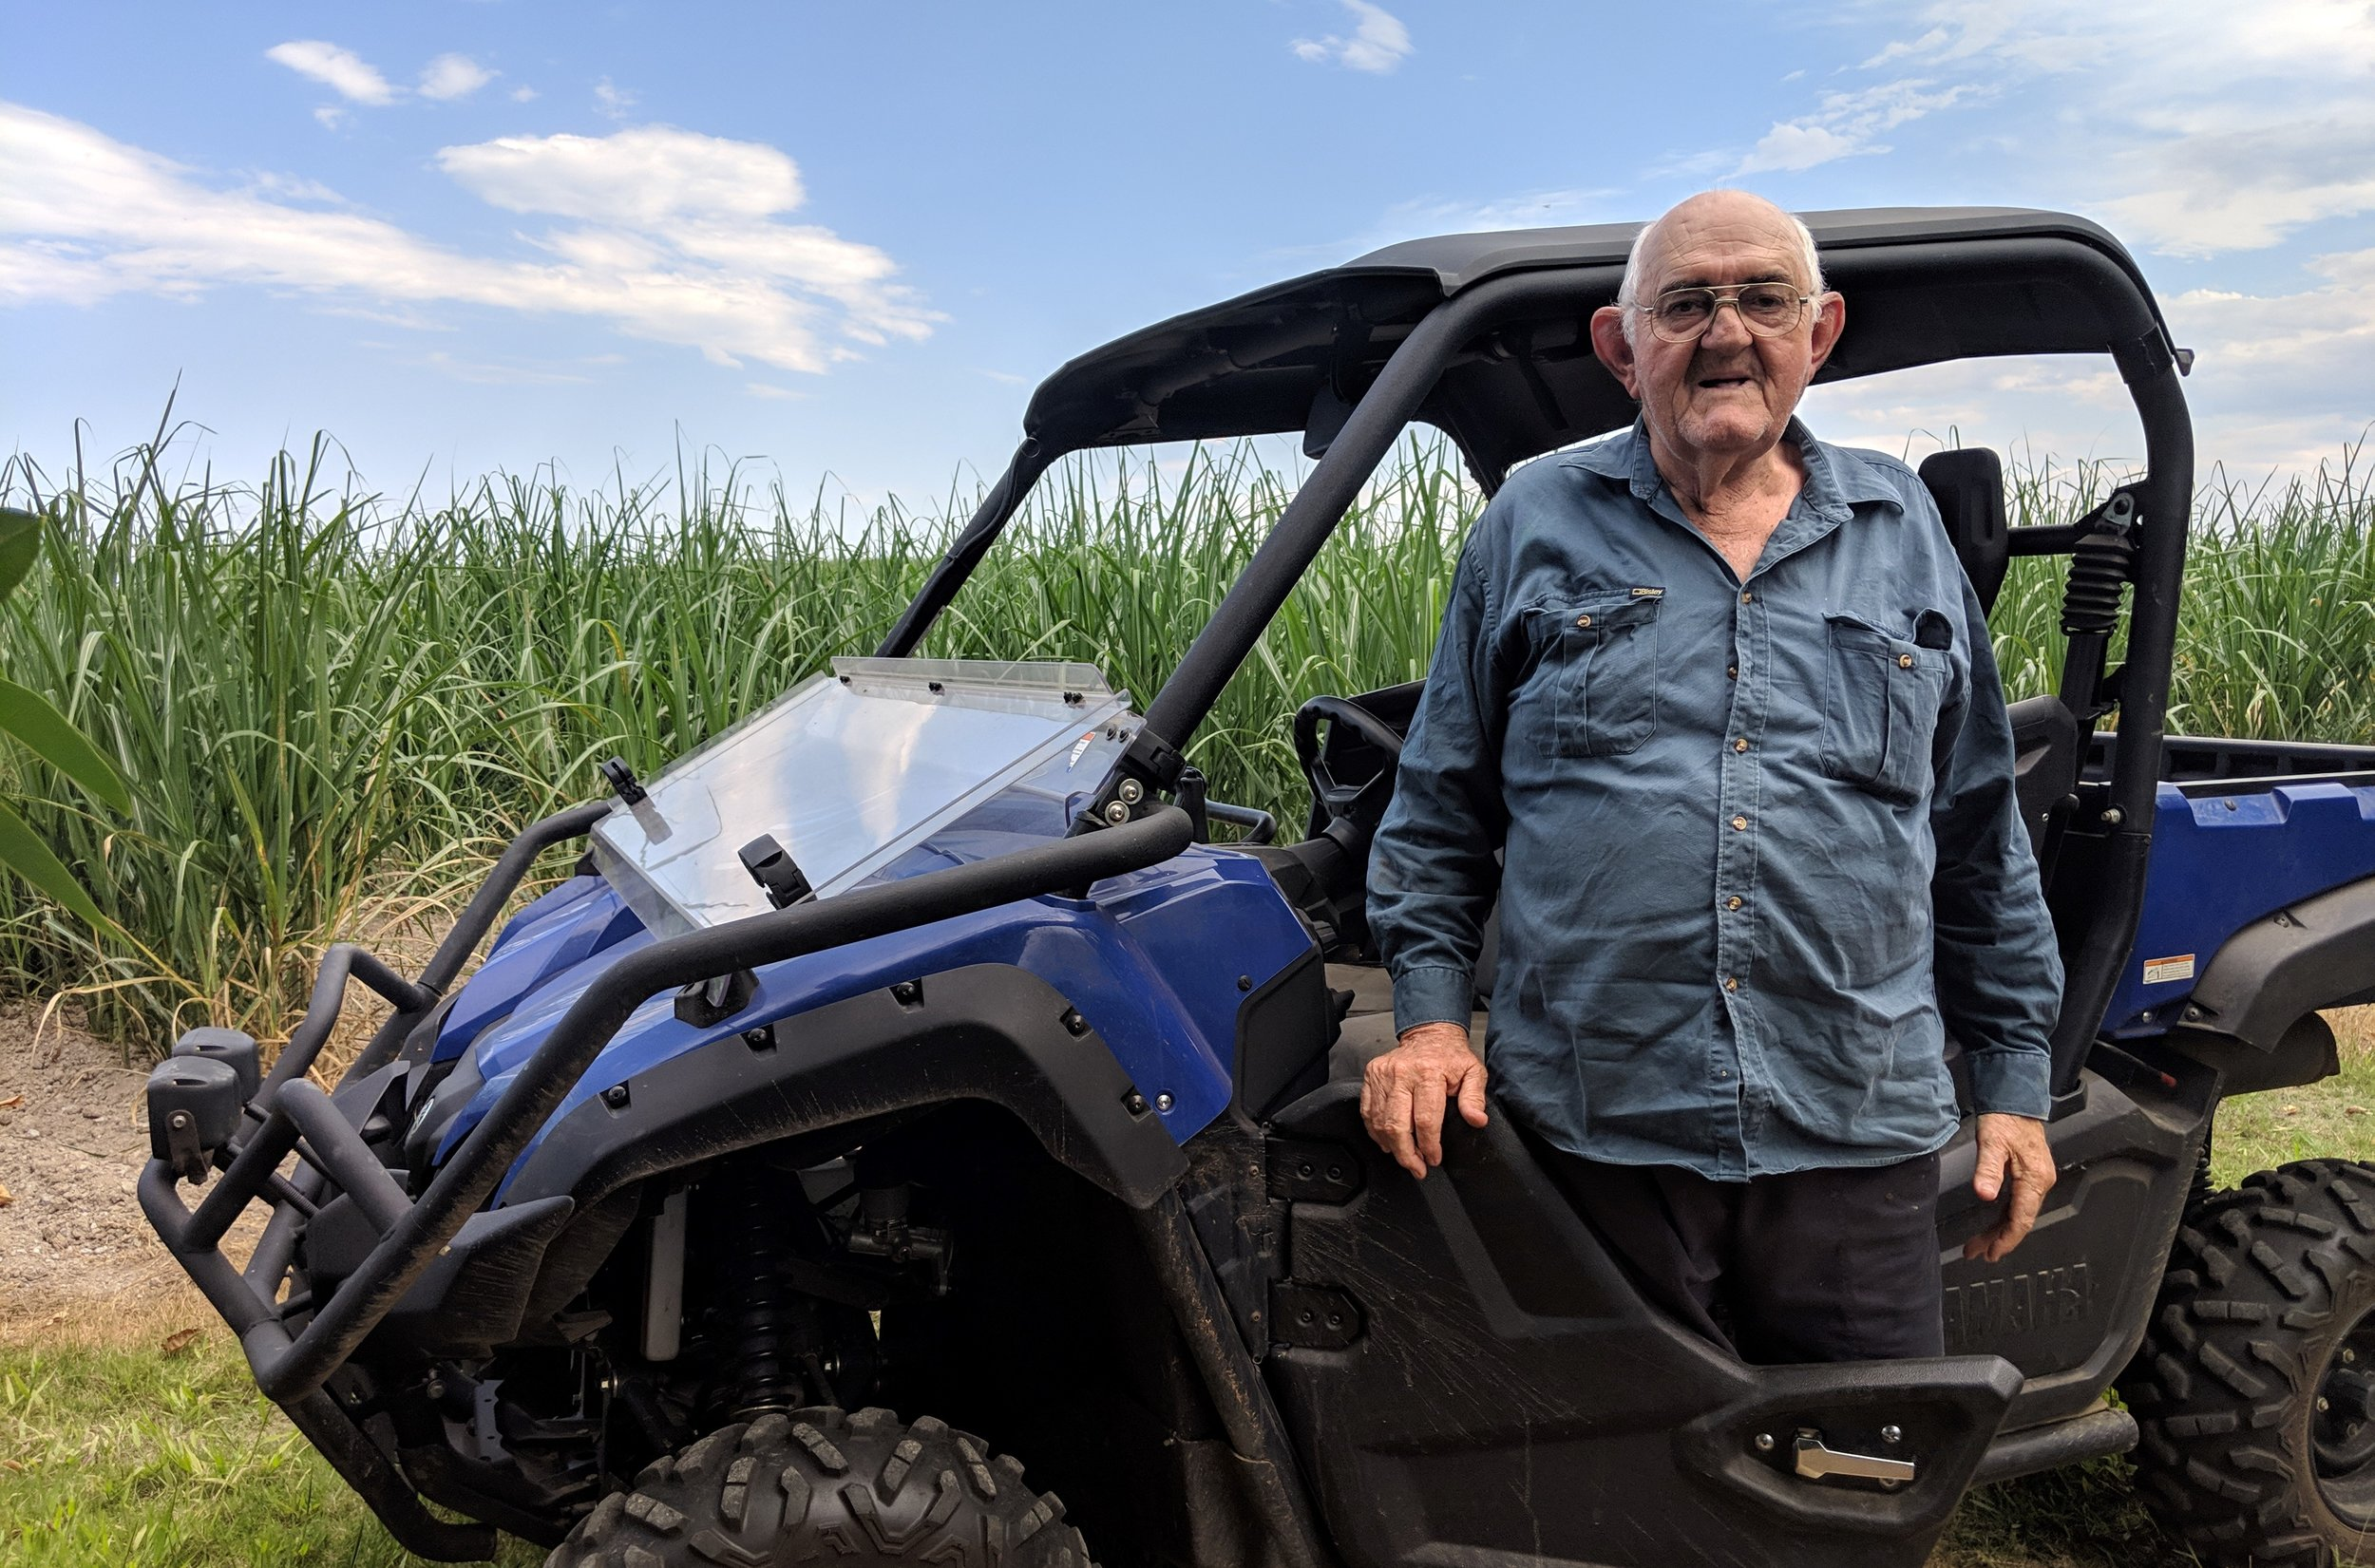 With more than 60 years' experience, Innisfail cane grower Denis Gattera has seen the sugarcane industry embrace new technology, machinery and practices.